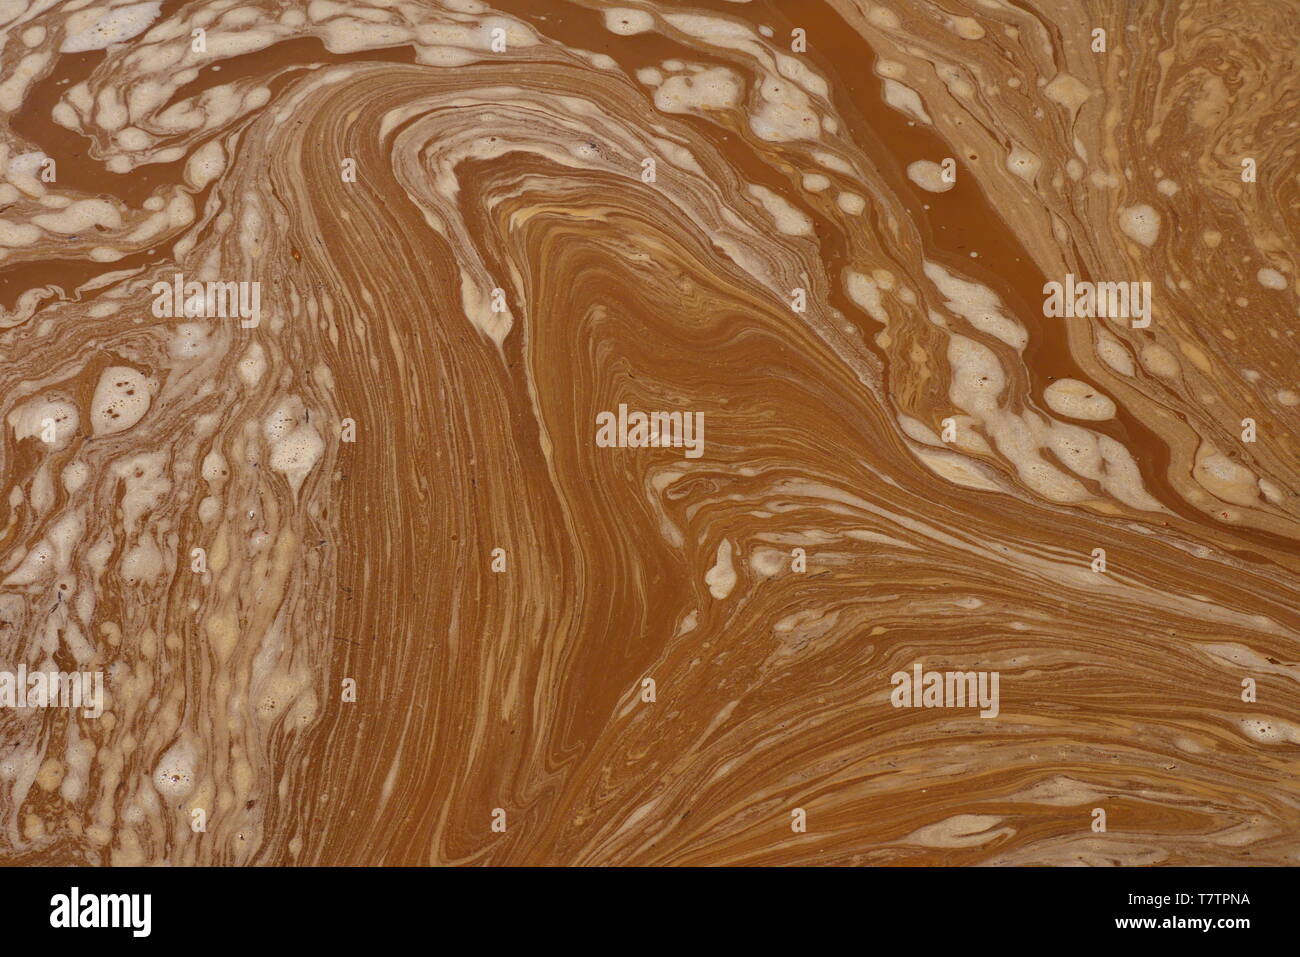 Abstract drawings drawn in a puddle of mud, an ideal image to use as a neutral background. - Stock Image